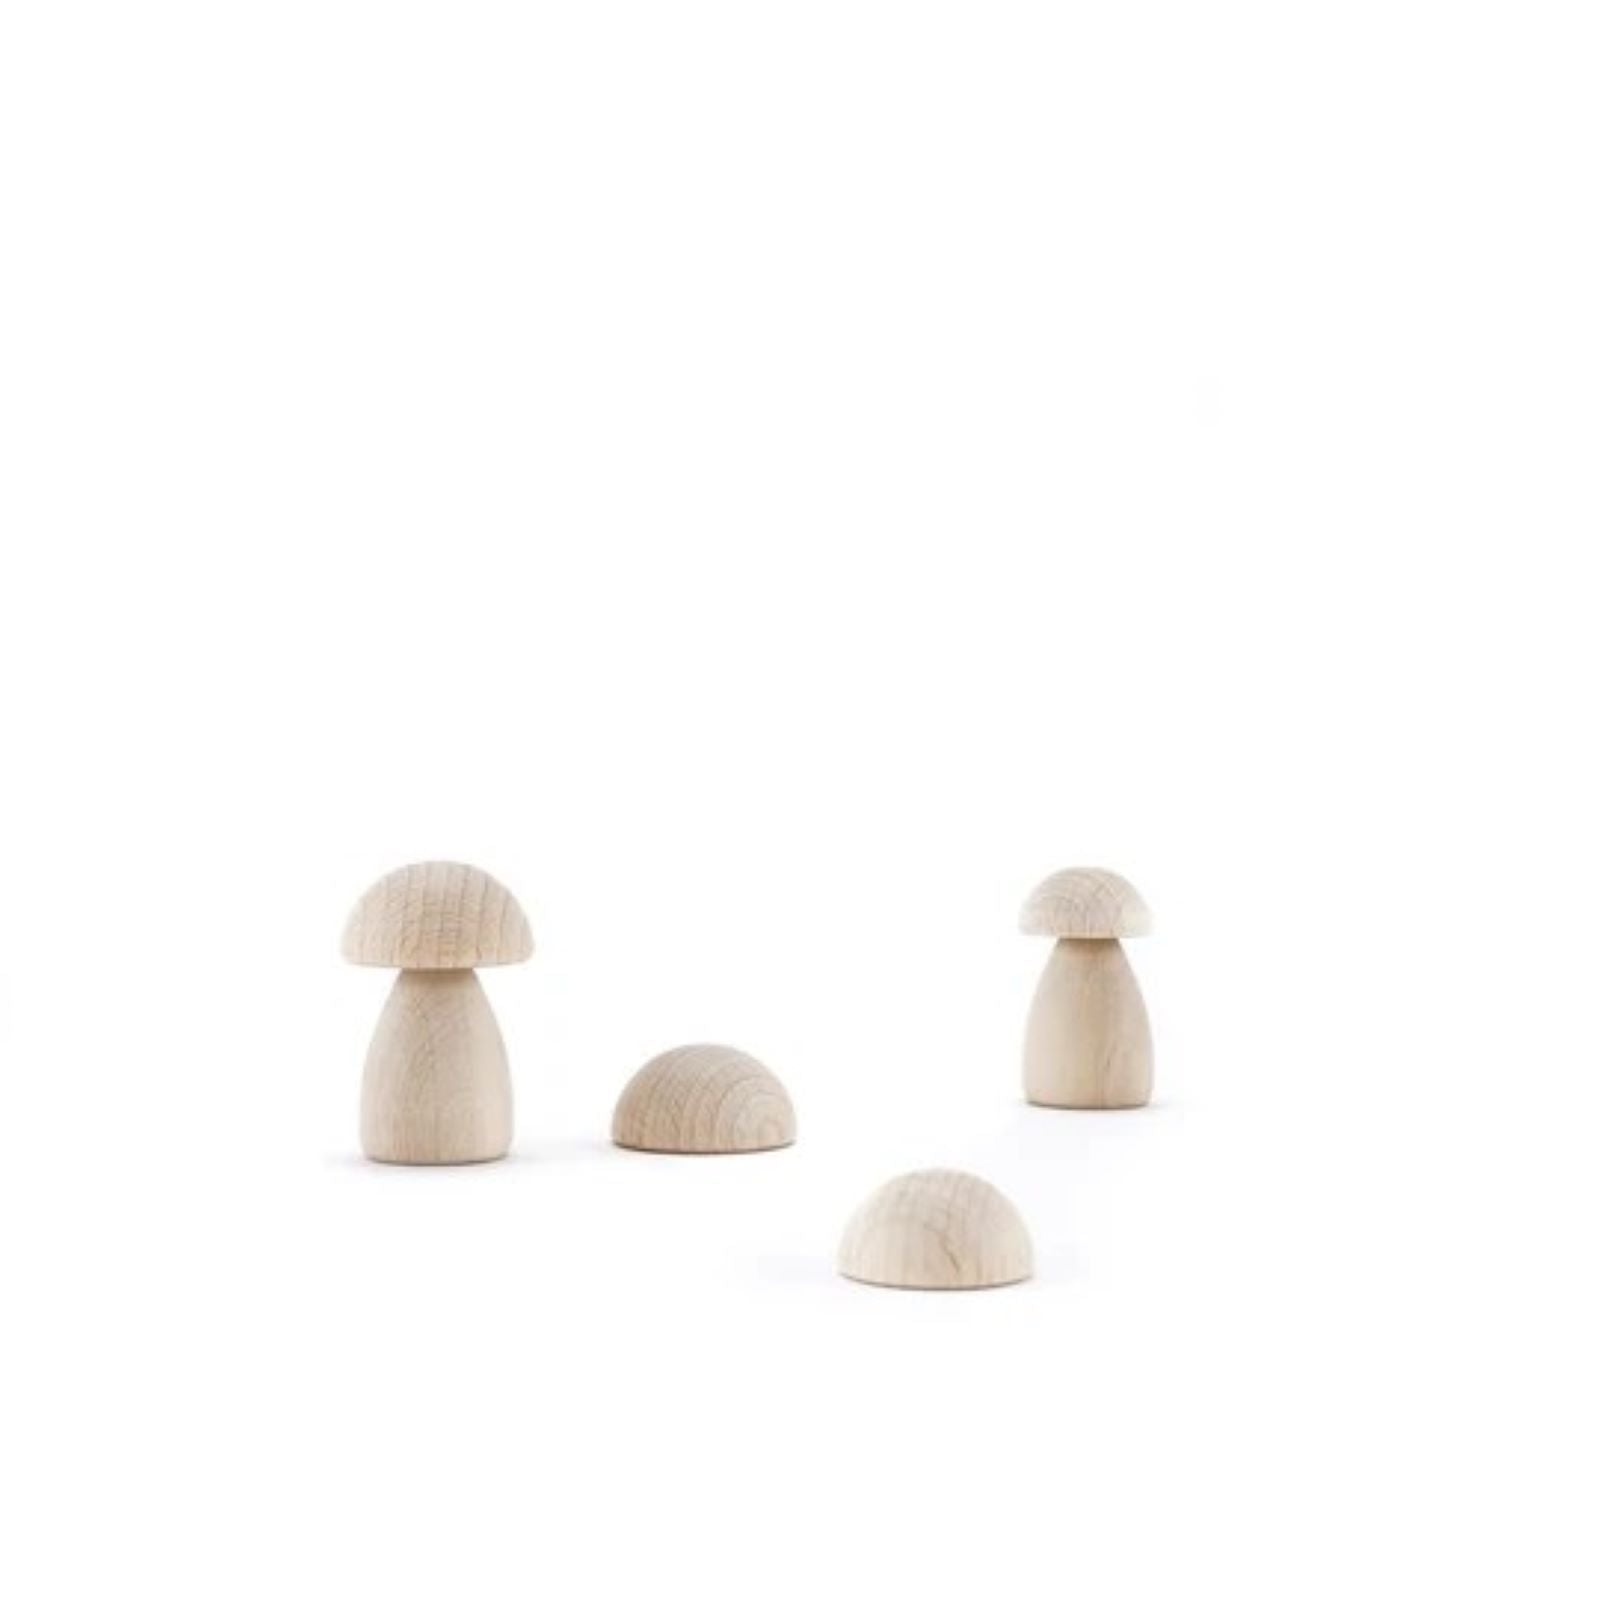 Clicques - DIY Mushrooms Wooden Set